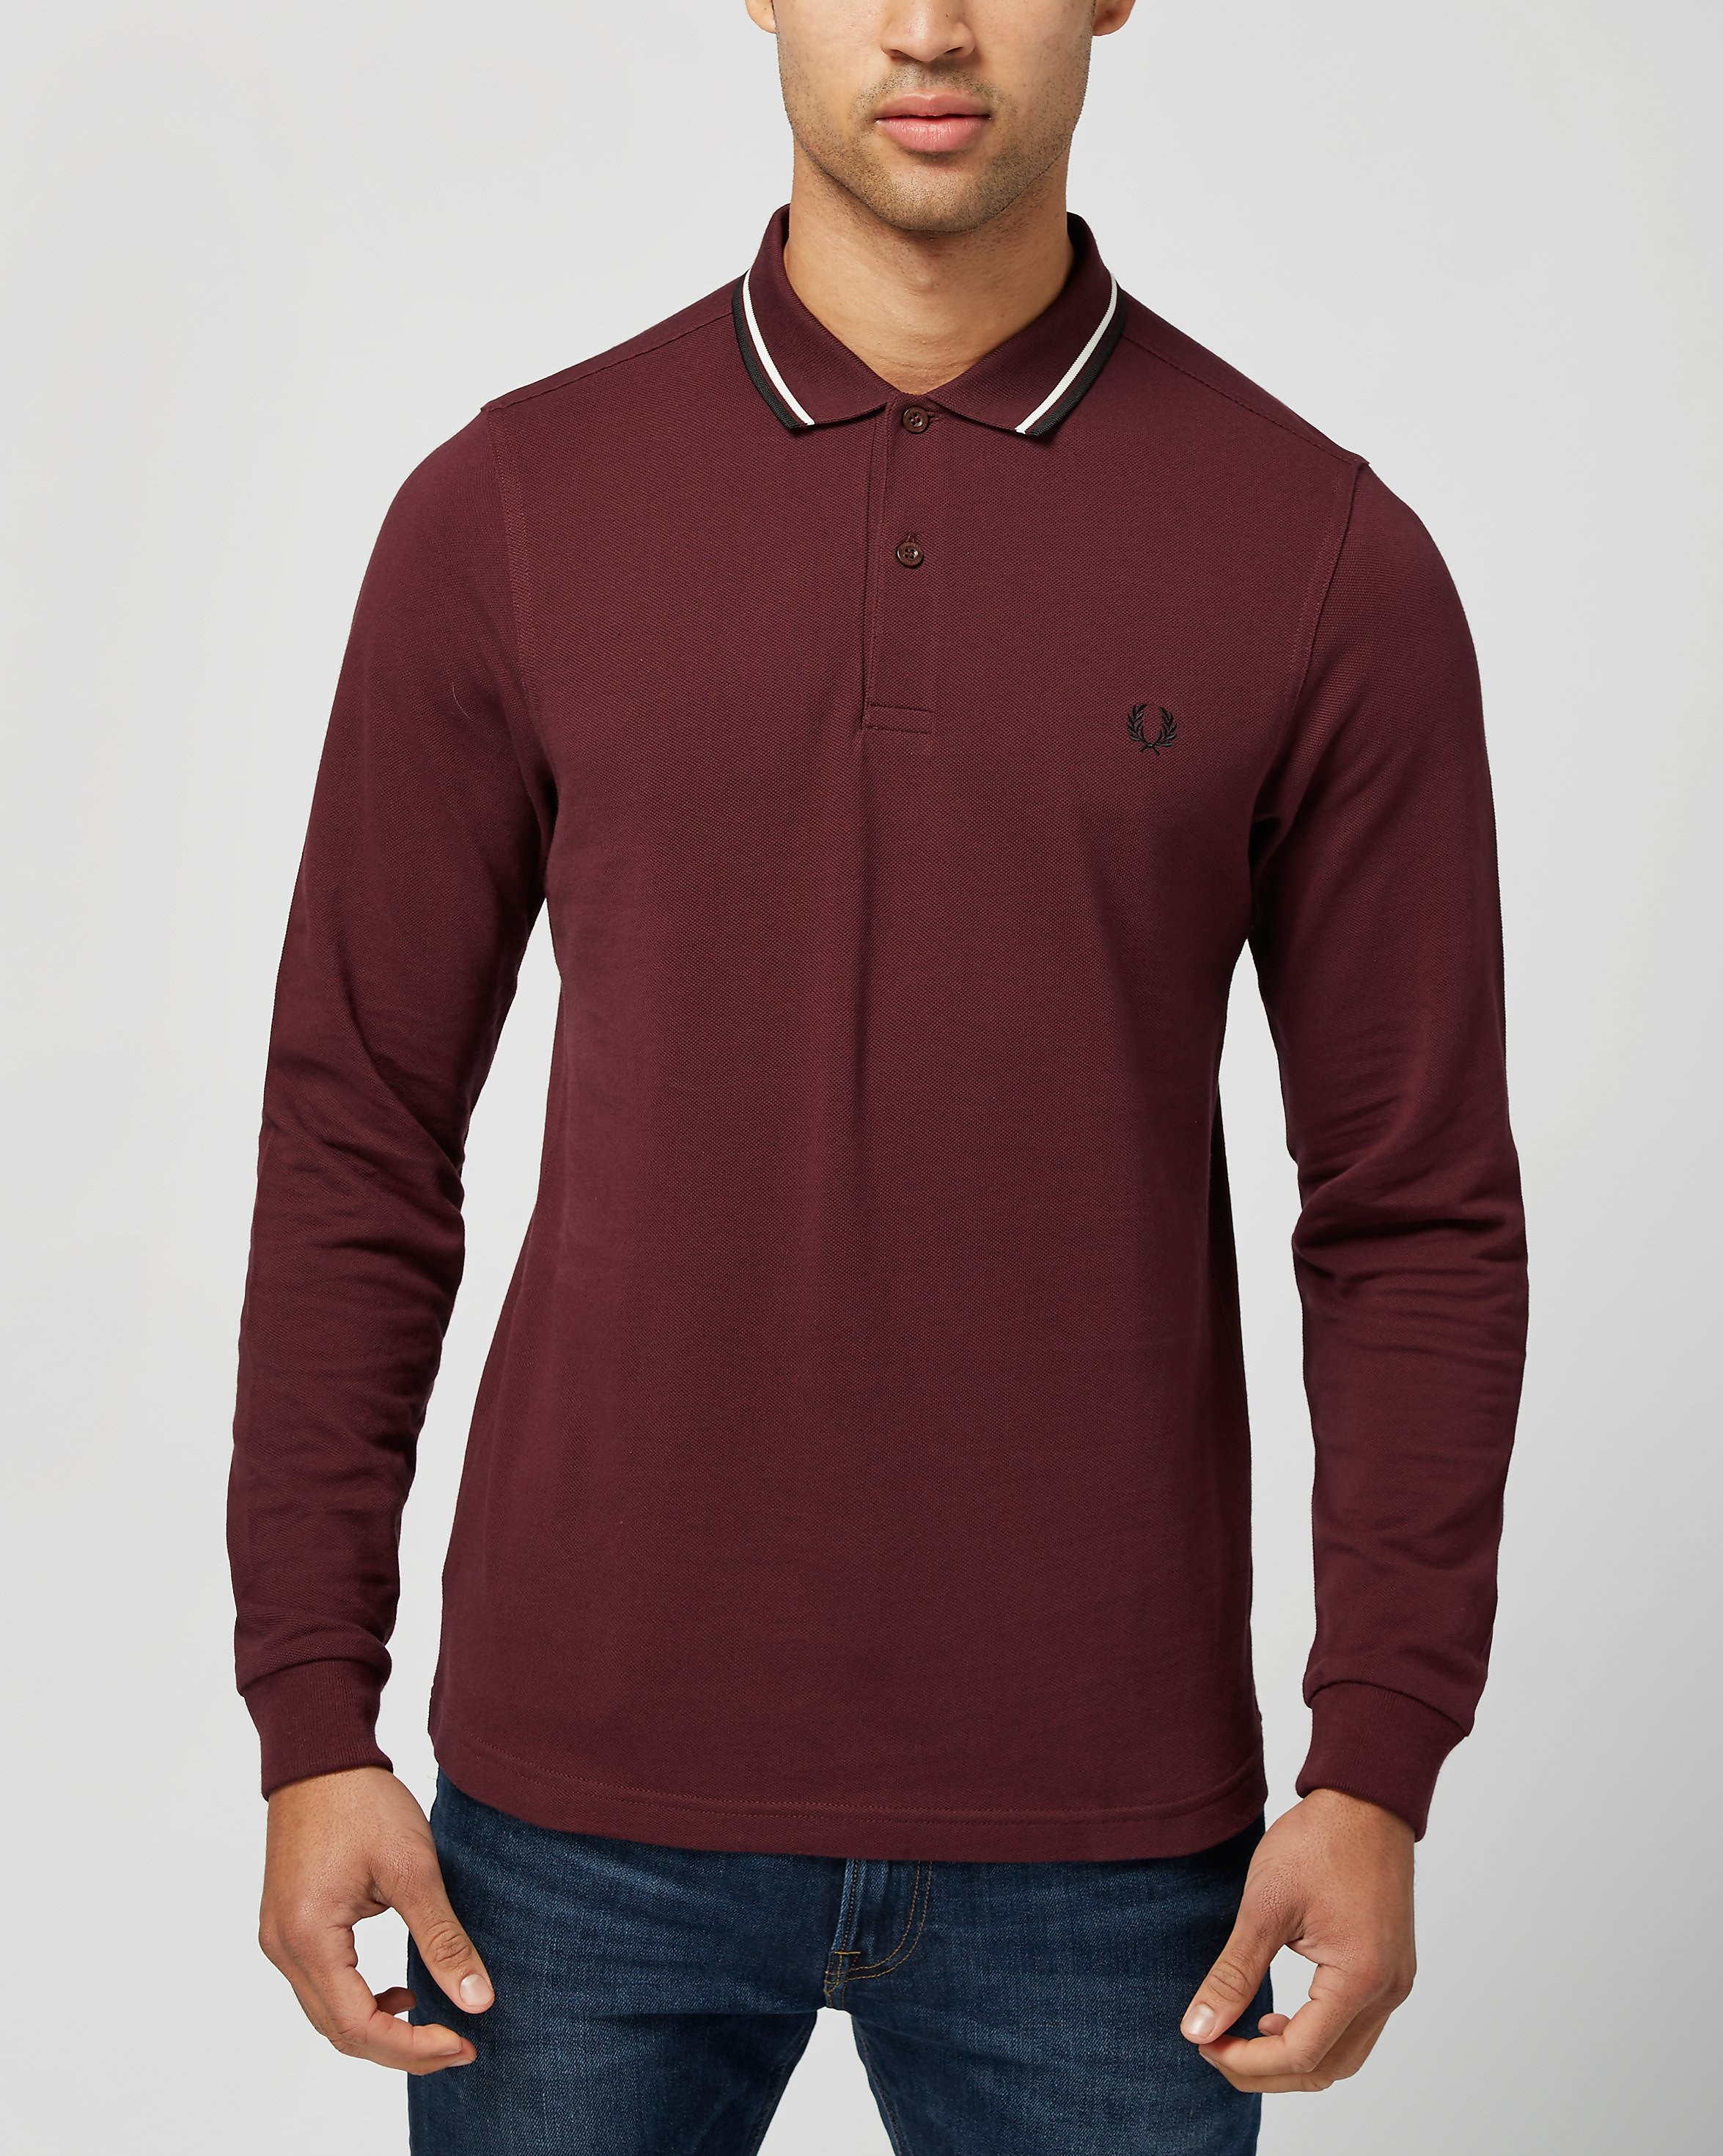 Fred Perry Long Sleeve Twin Tip Polo Shirt  Burgundy Burgundy